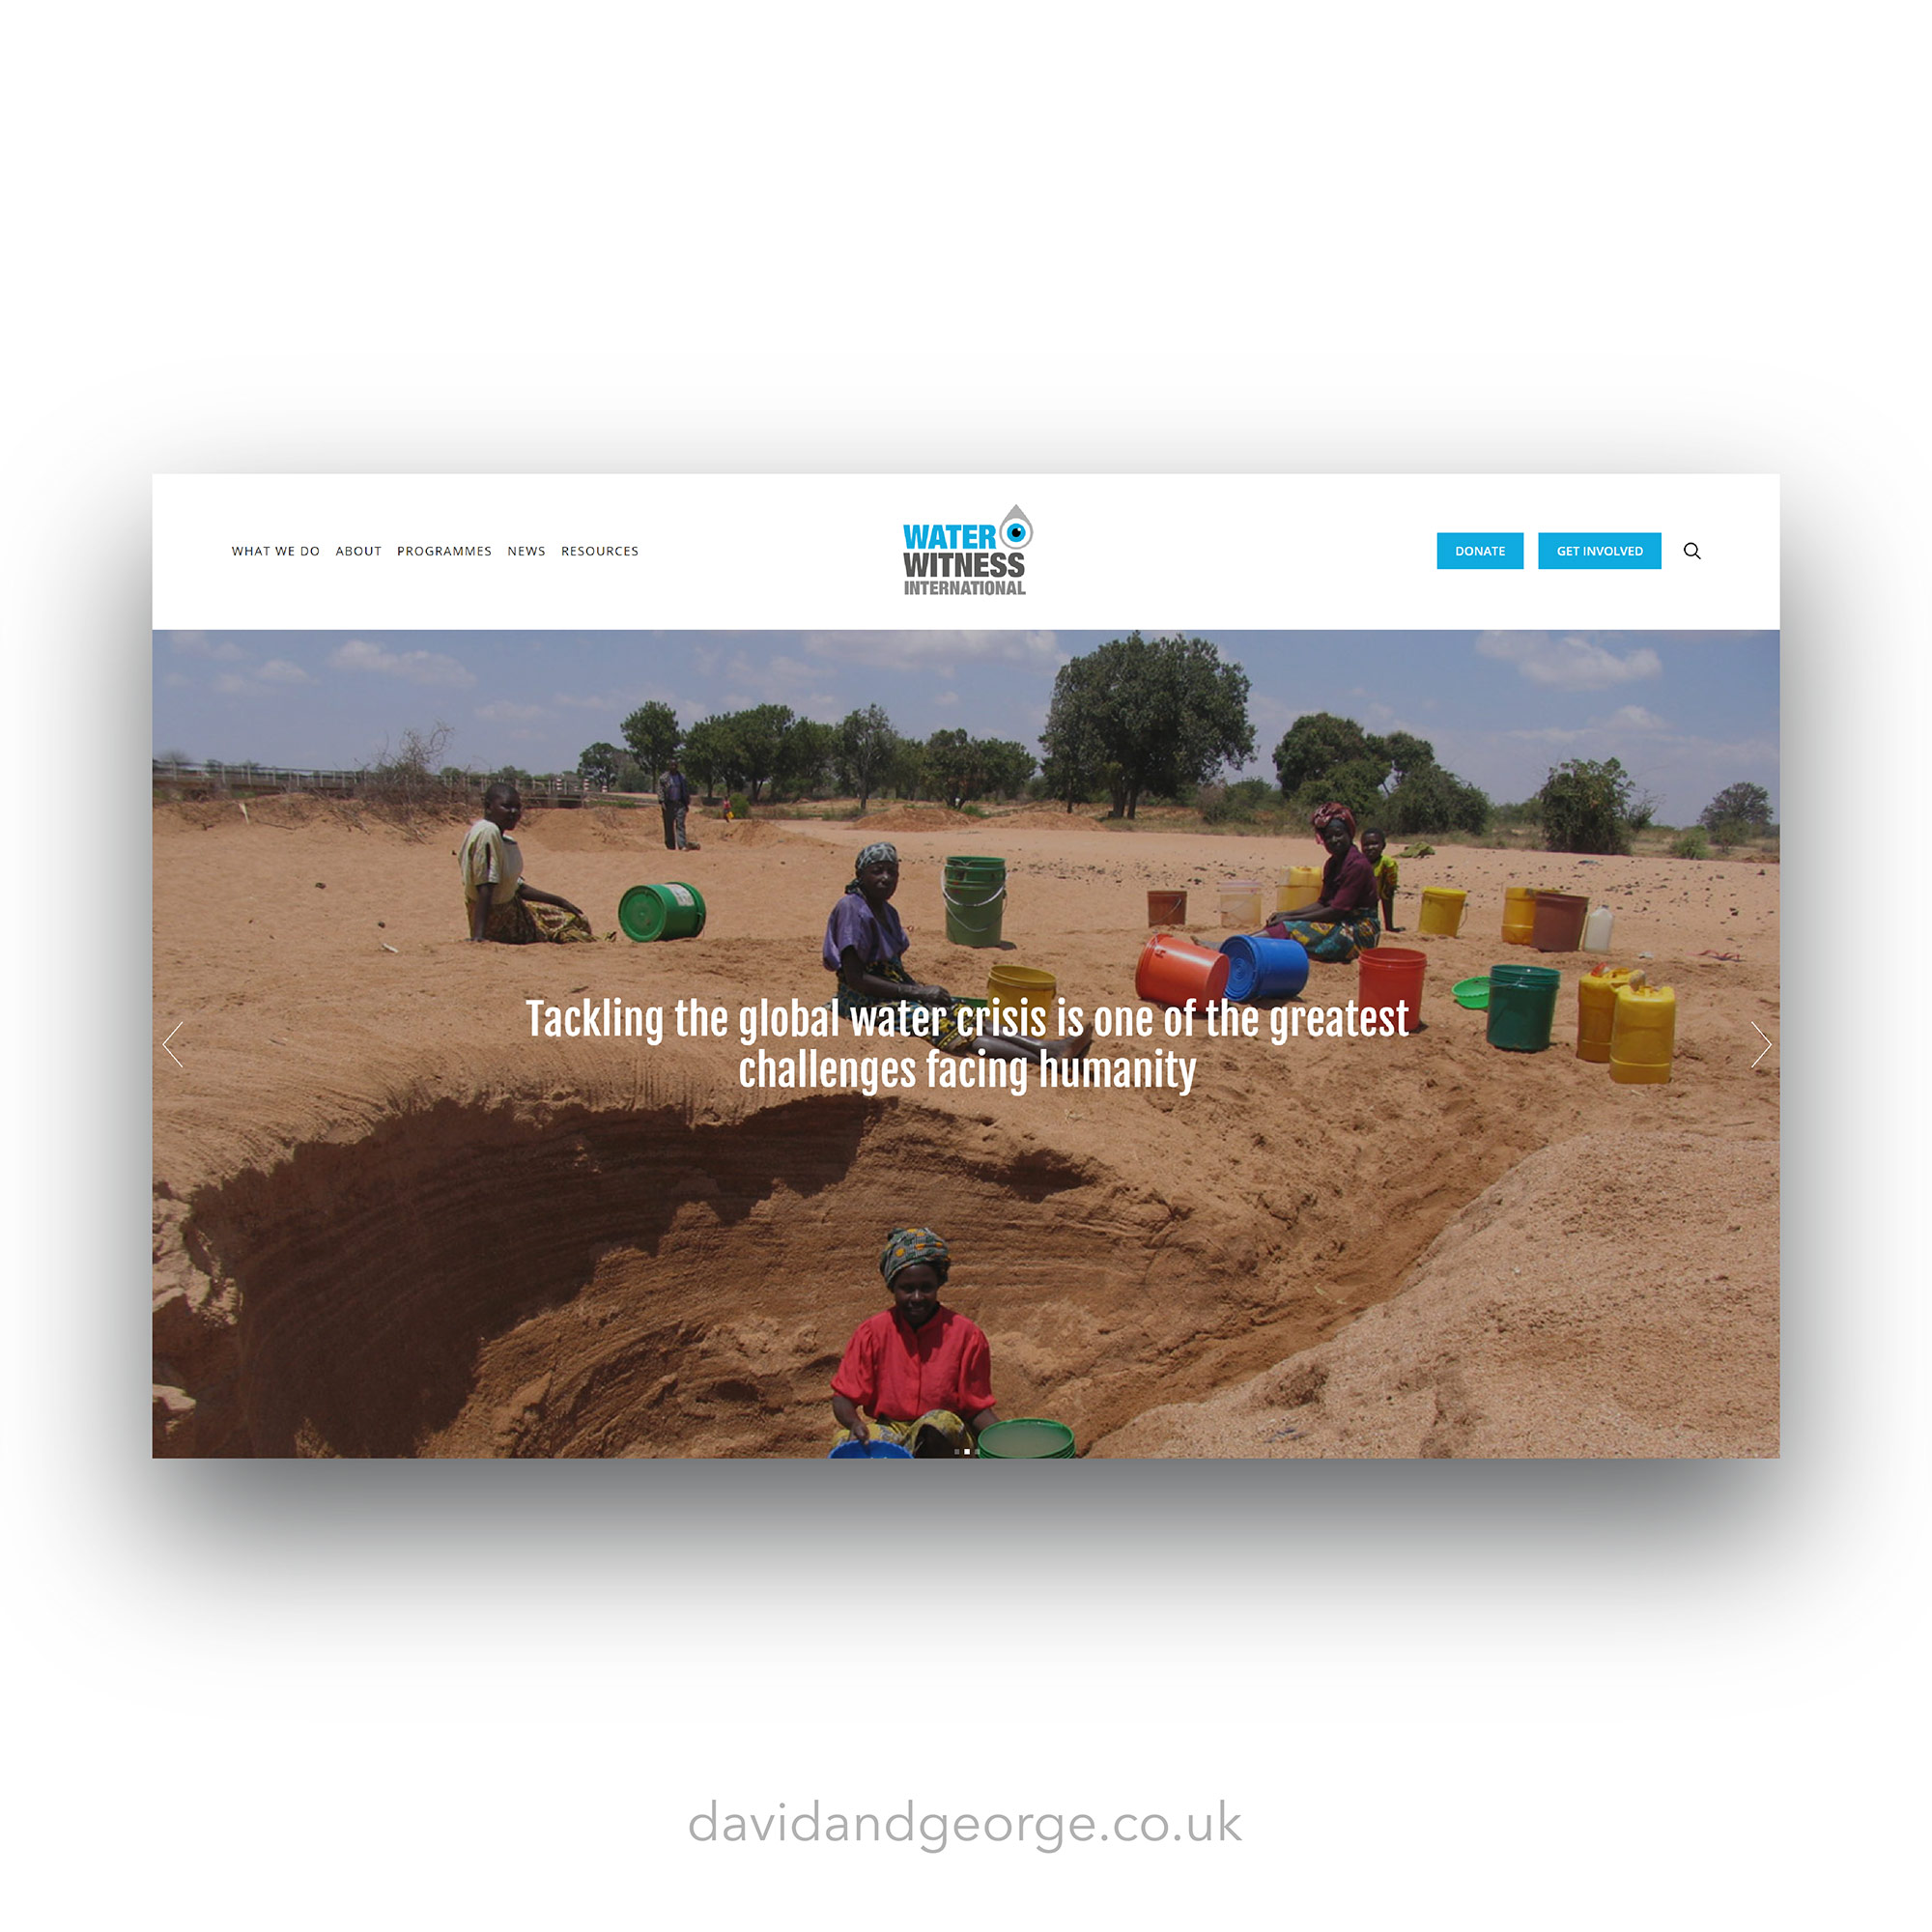 squarespace-website-design-london-edinburgh-uk-david-and-george-water-witness-best-charity-website-examples-organisation.jpg